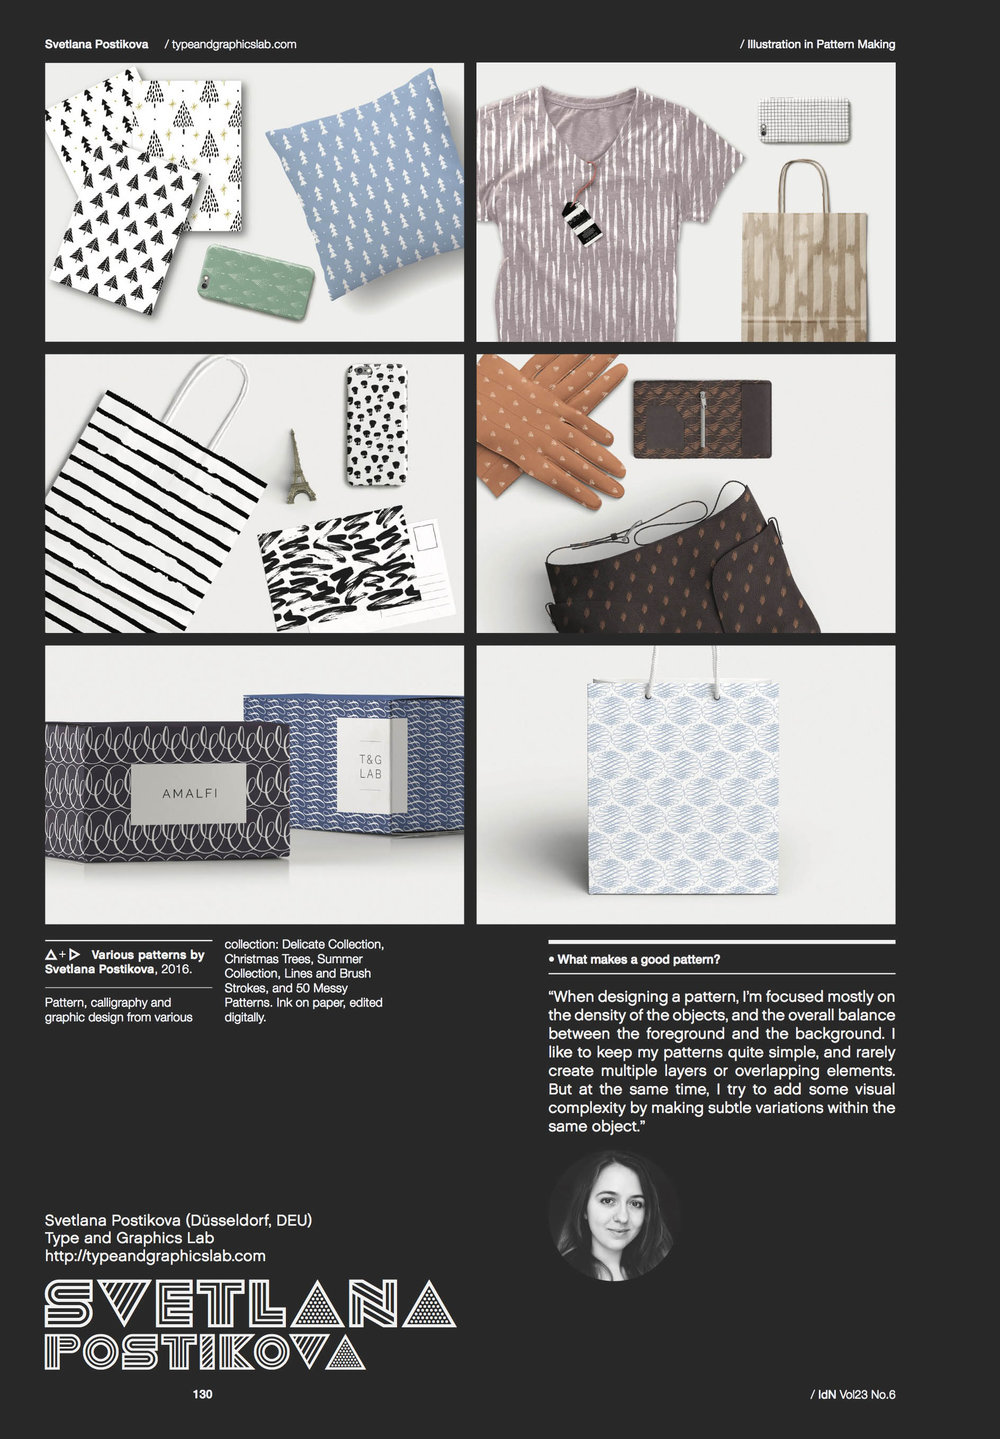 The spread with Svetlana Postikova's work from IdN Magazine v23n6: Illustration in Pattern Making.